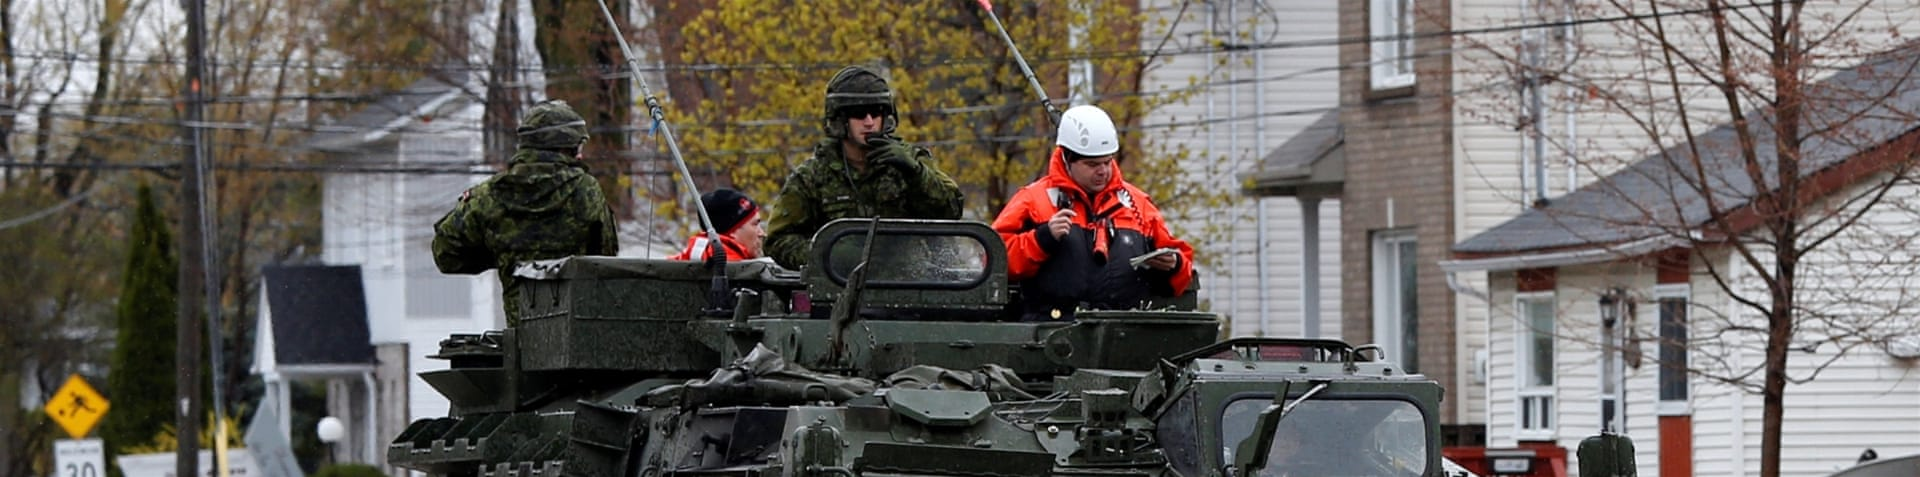 Around 1,200 Canadian forces personnel have been drafted to help with relief [Christinne Muschi/Reuters]